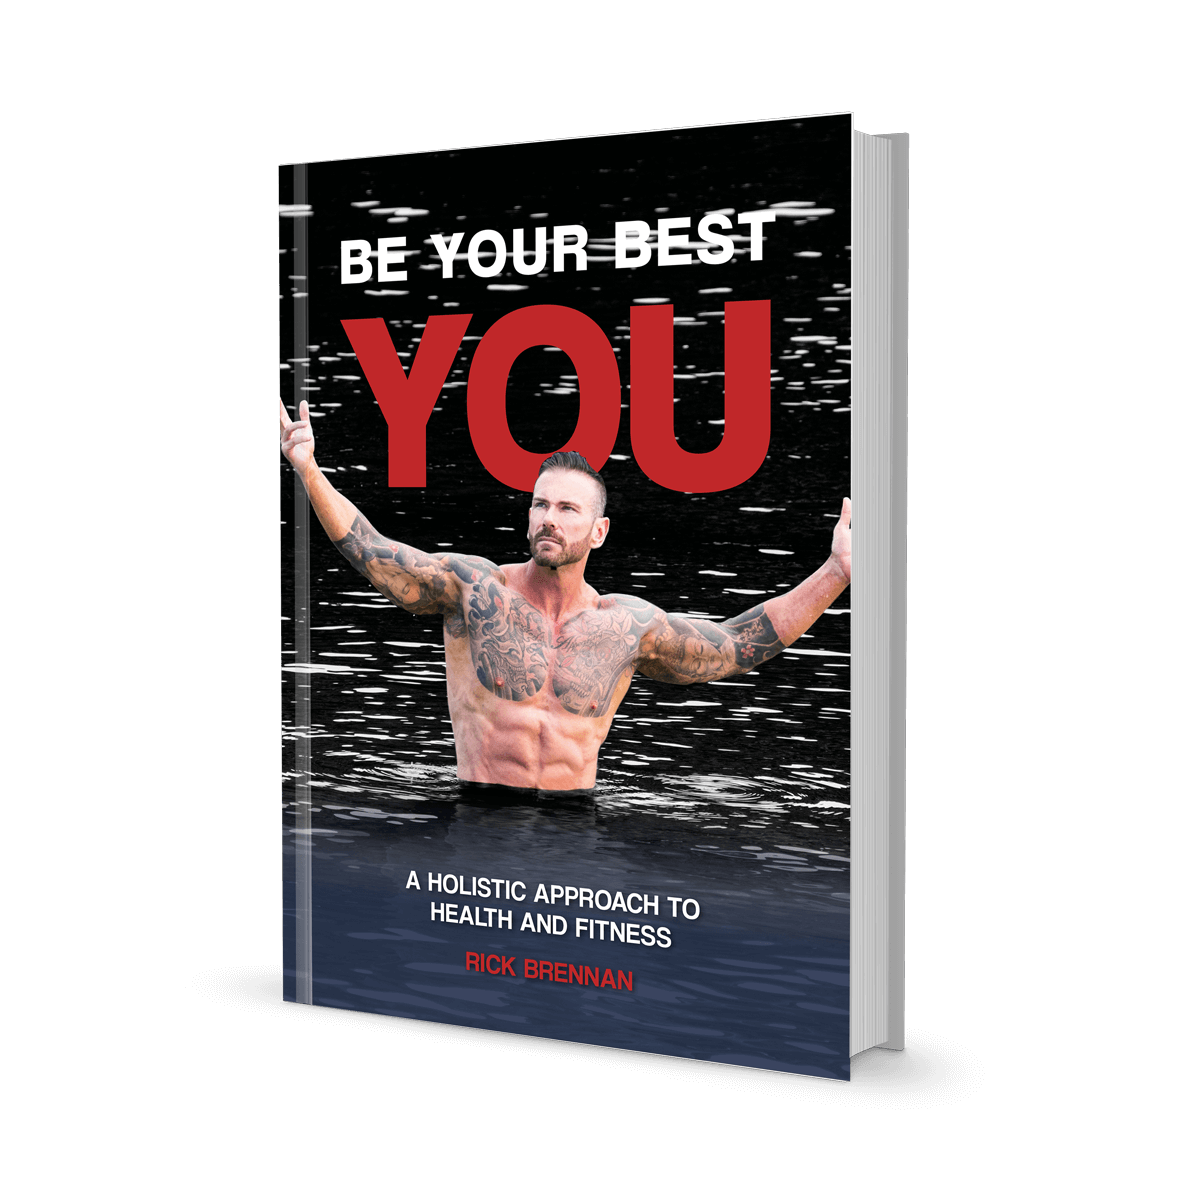 Your-Best-You-Health-and-Fitness-Ebook